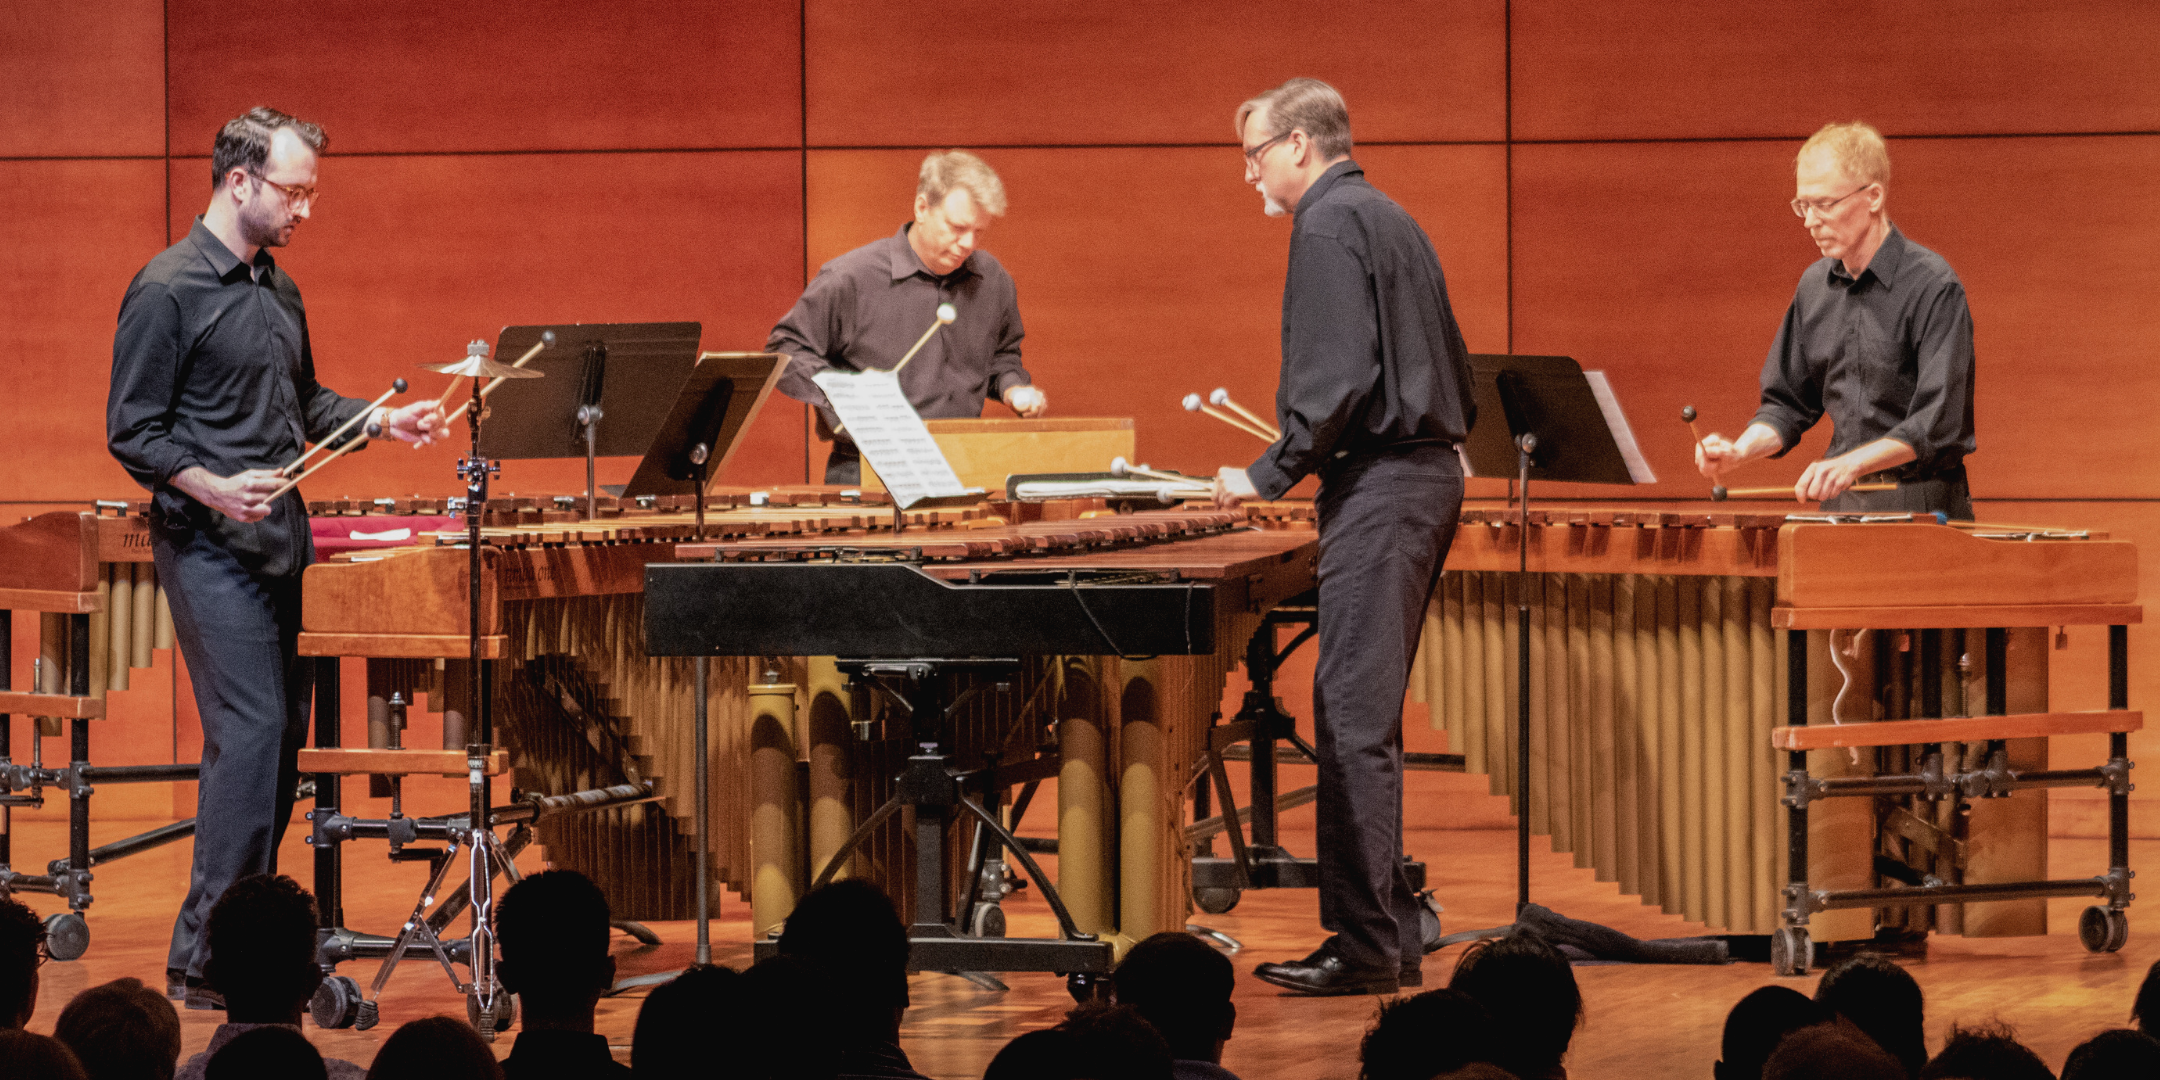 Musicians playing marimba and percussion instruments